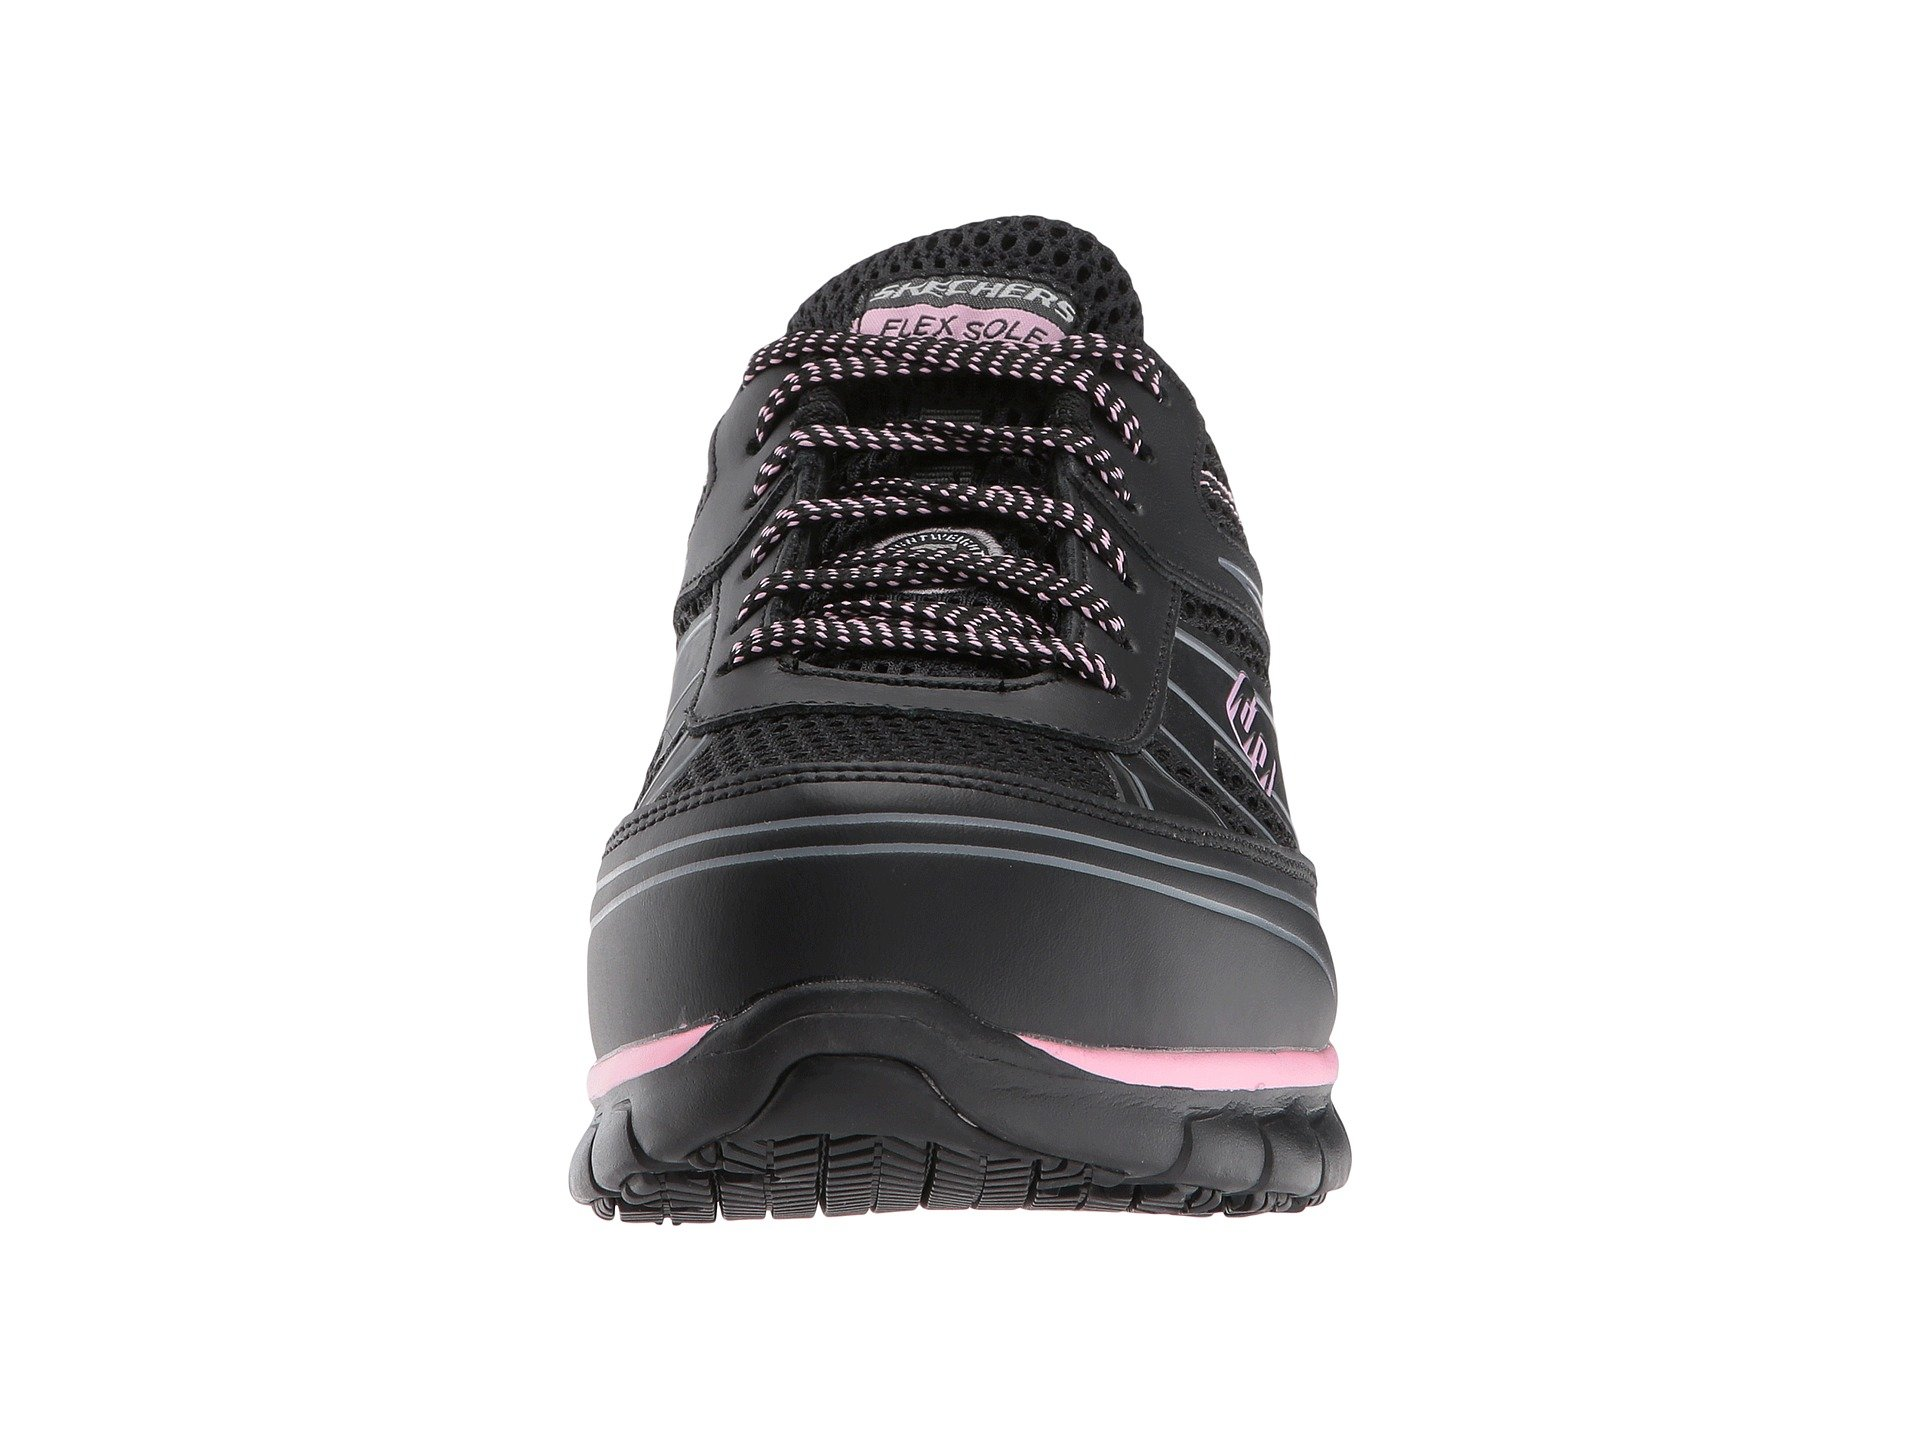 algonac women Casual - lightweight, flexible and protective with a shock-absorbing midsole, aluminum alloy safety toe, electrical hazard-safe design and slip-resistant rubber outsole.